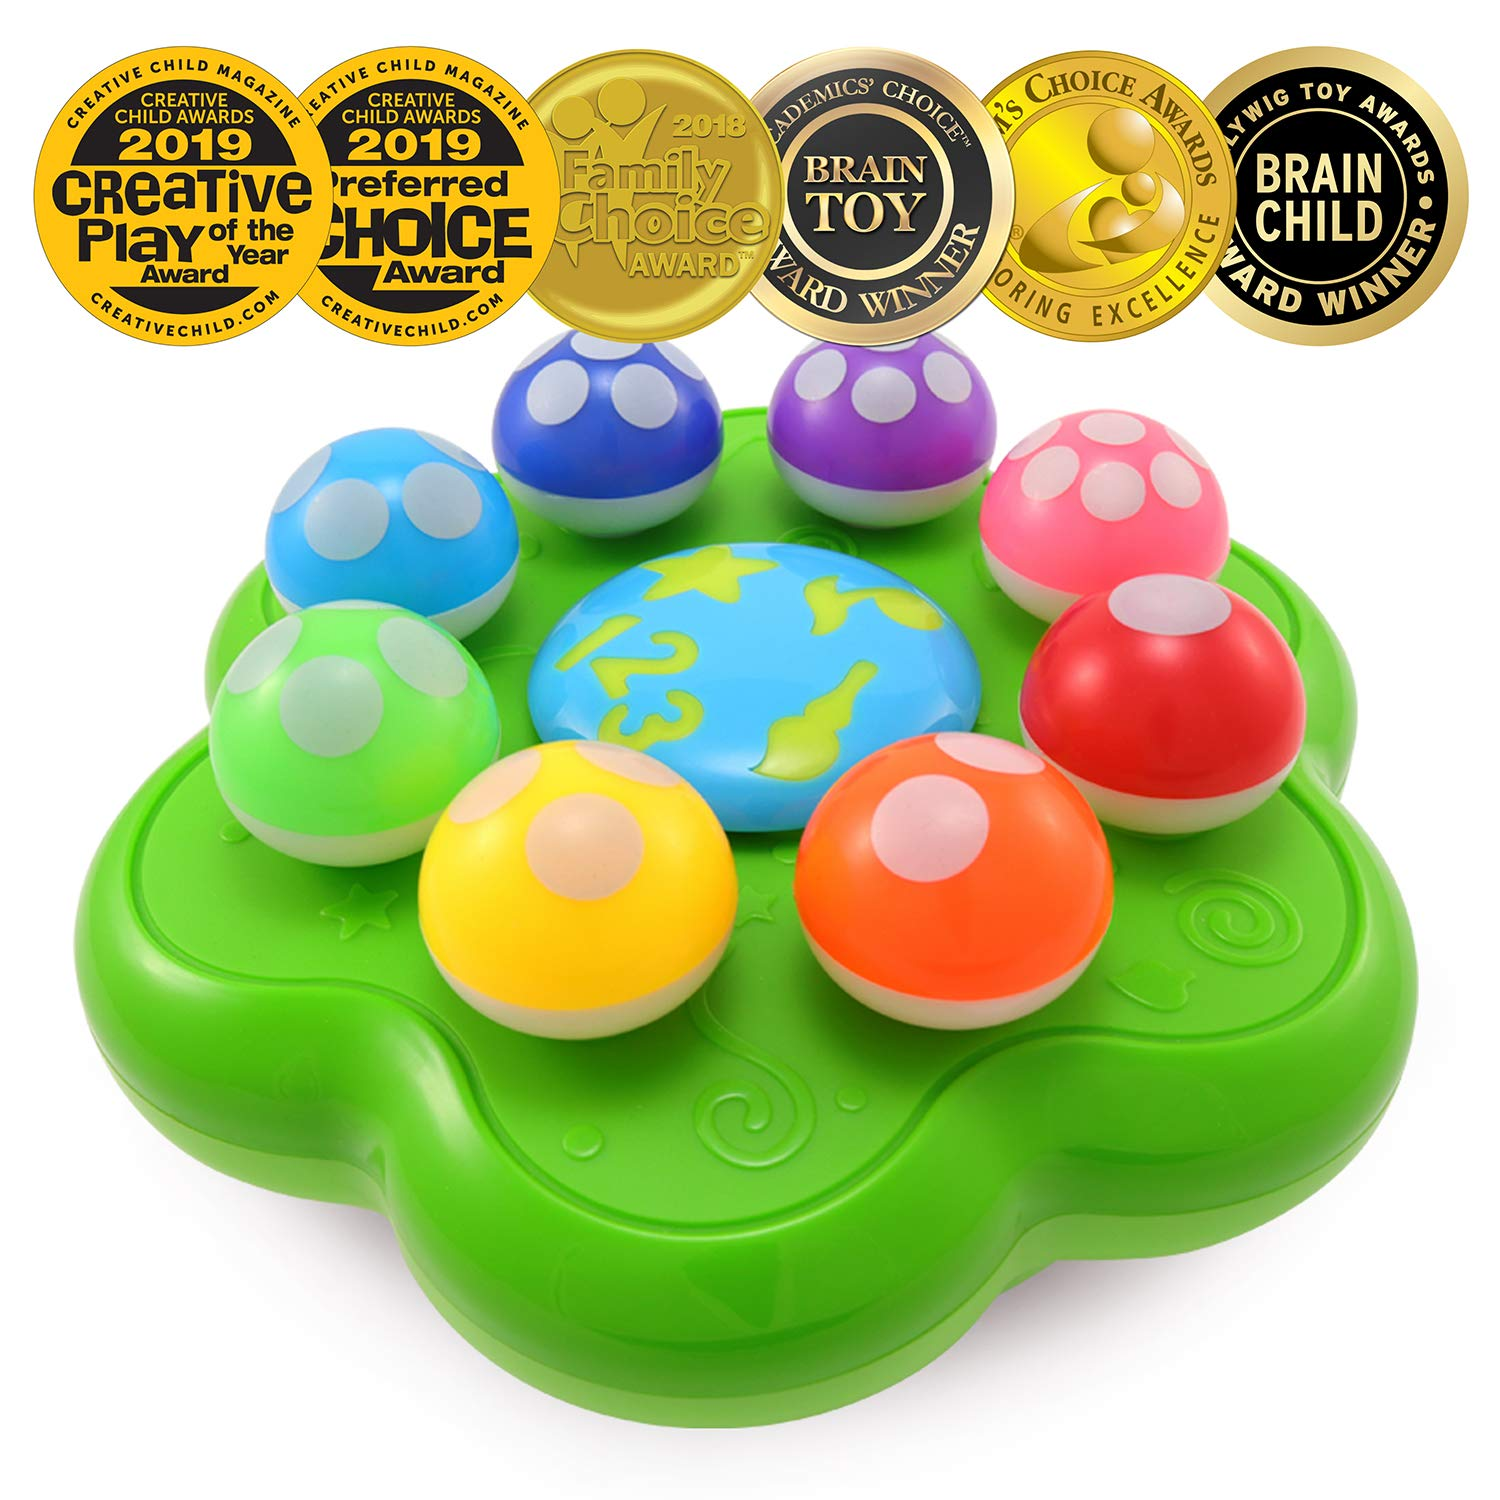 BEST LEARNING Mushroom Garden - Interactive Educational Light-Up Toddler Toys for 1 to 3 Years Old Infants & Toddlers - Colors, Numbers, Games & Music for Kids by BEST LEARNING